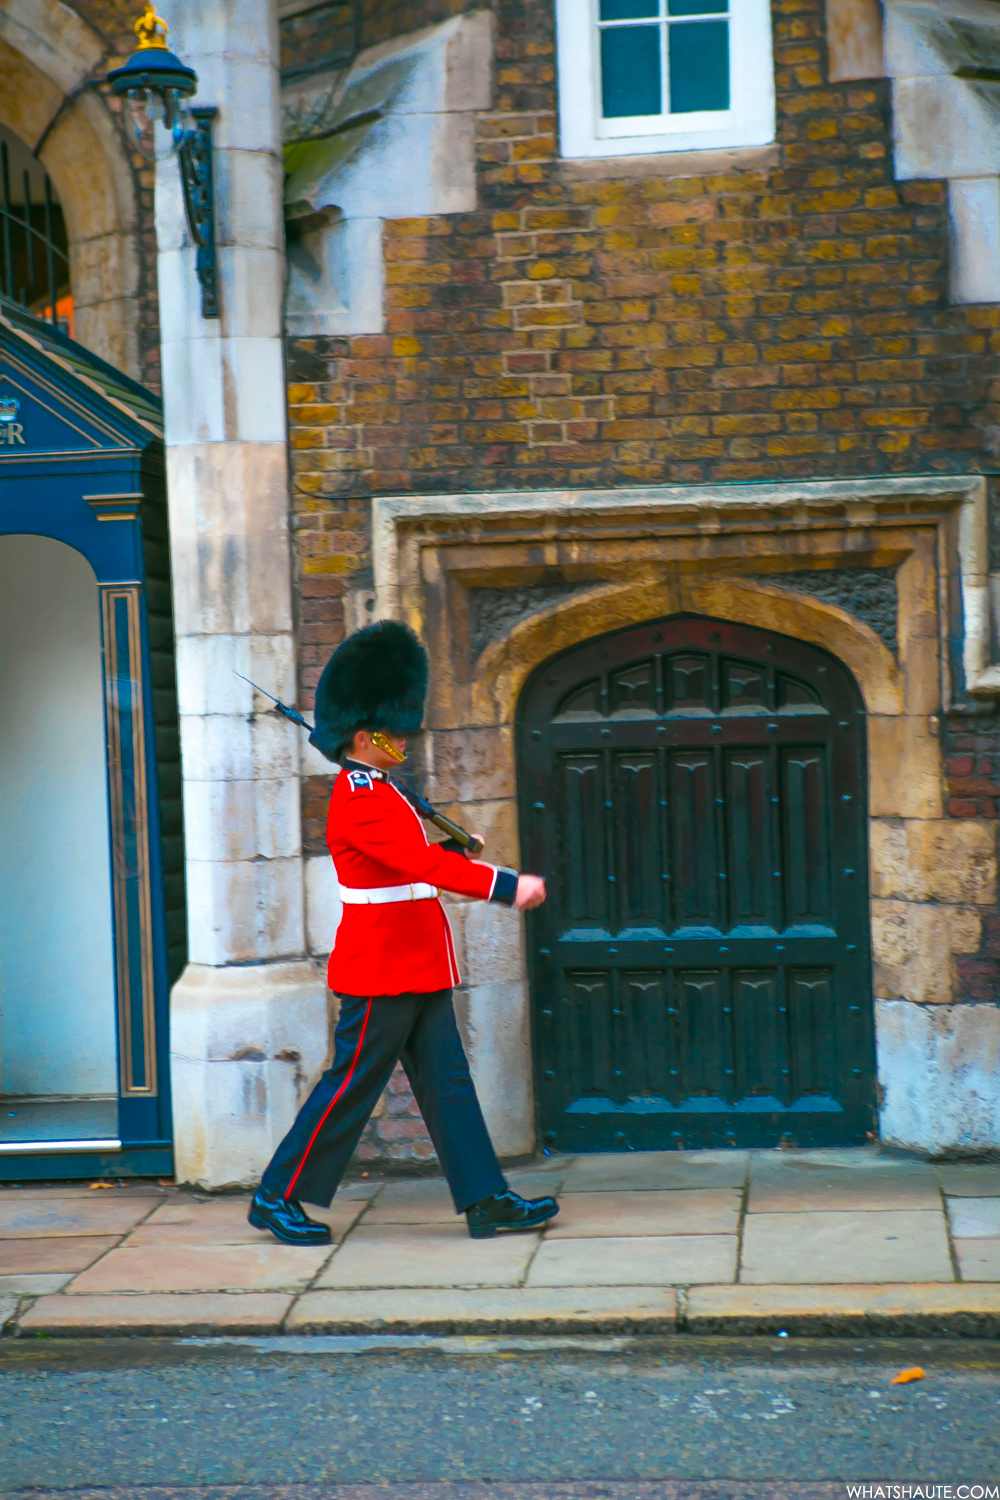 Royal Guard on Cleveland Row at St. James's Palace - London, England, What's Haute in the World